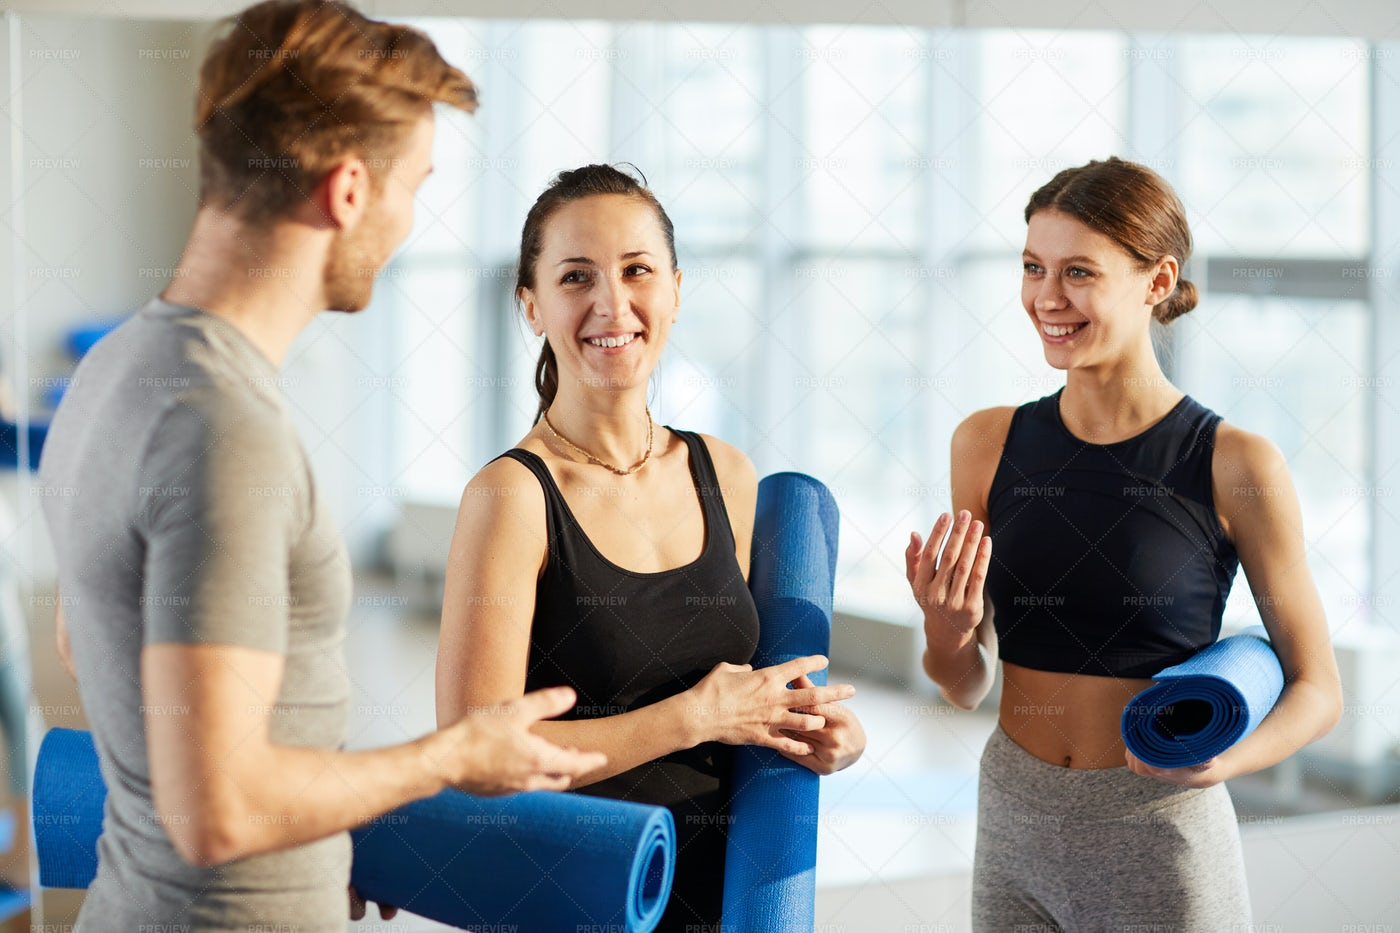 Yoga Students Discussing New...: Stock Photos